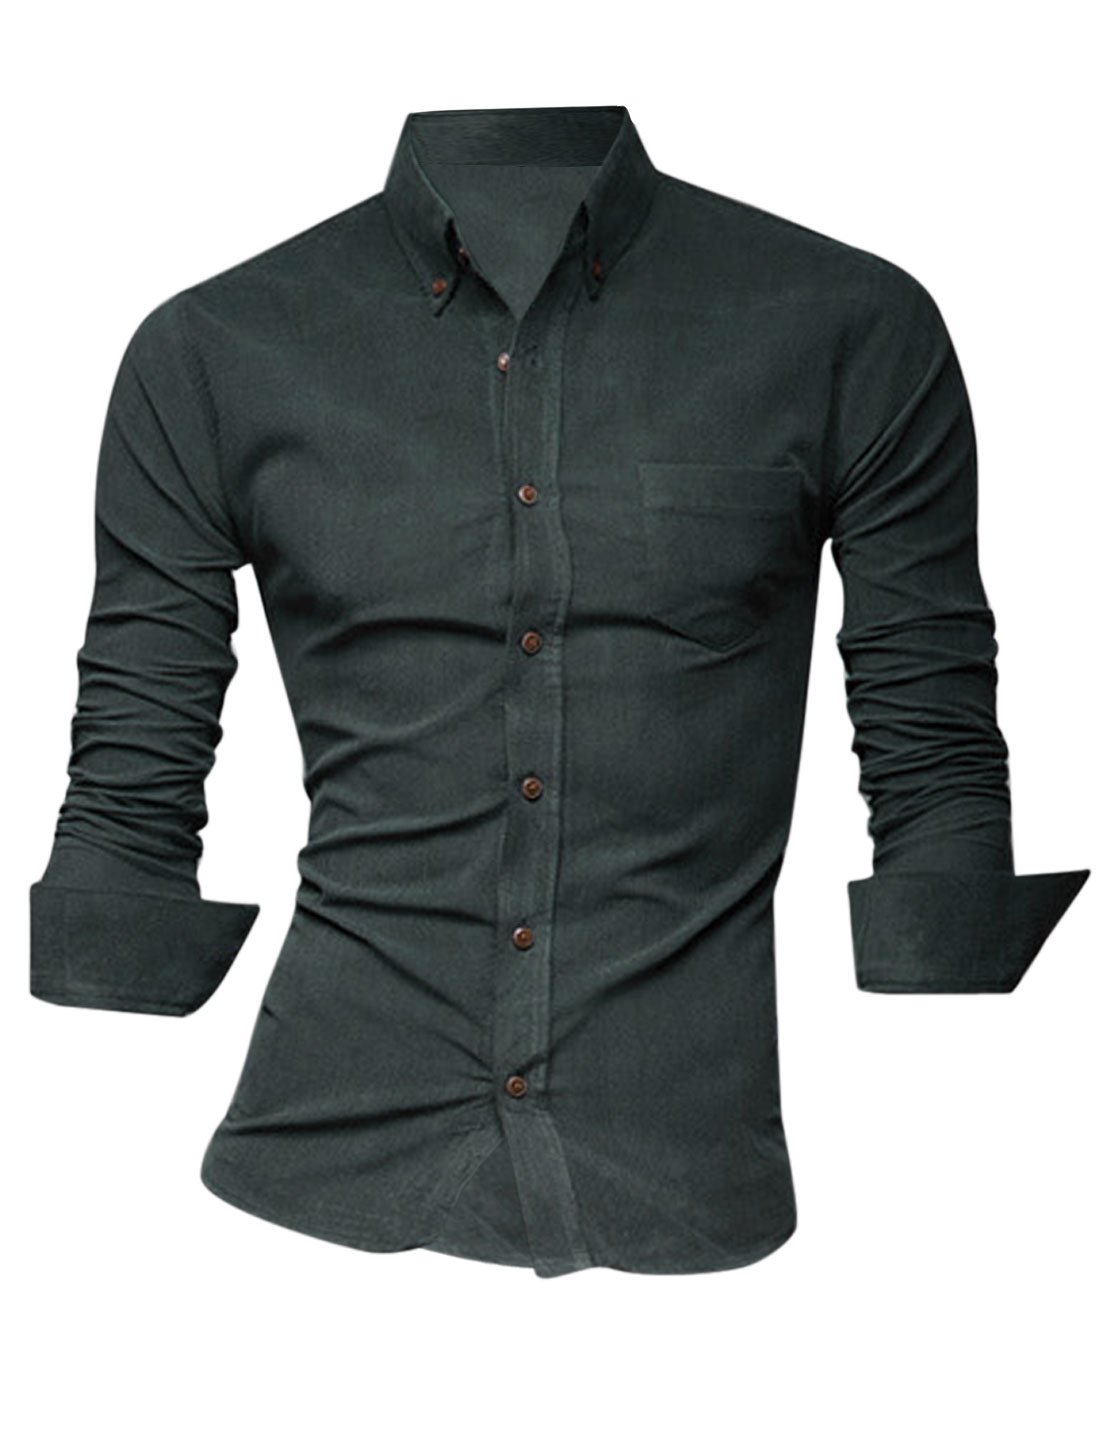 Men Simple Style Buttoned Front Chest Pocket Fitting Shirt Dark Gray M